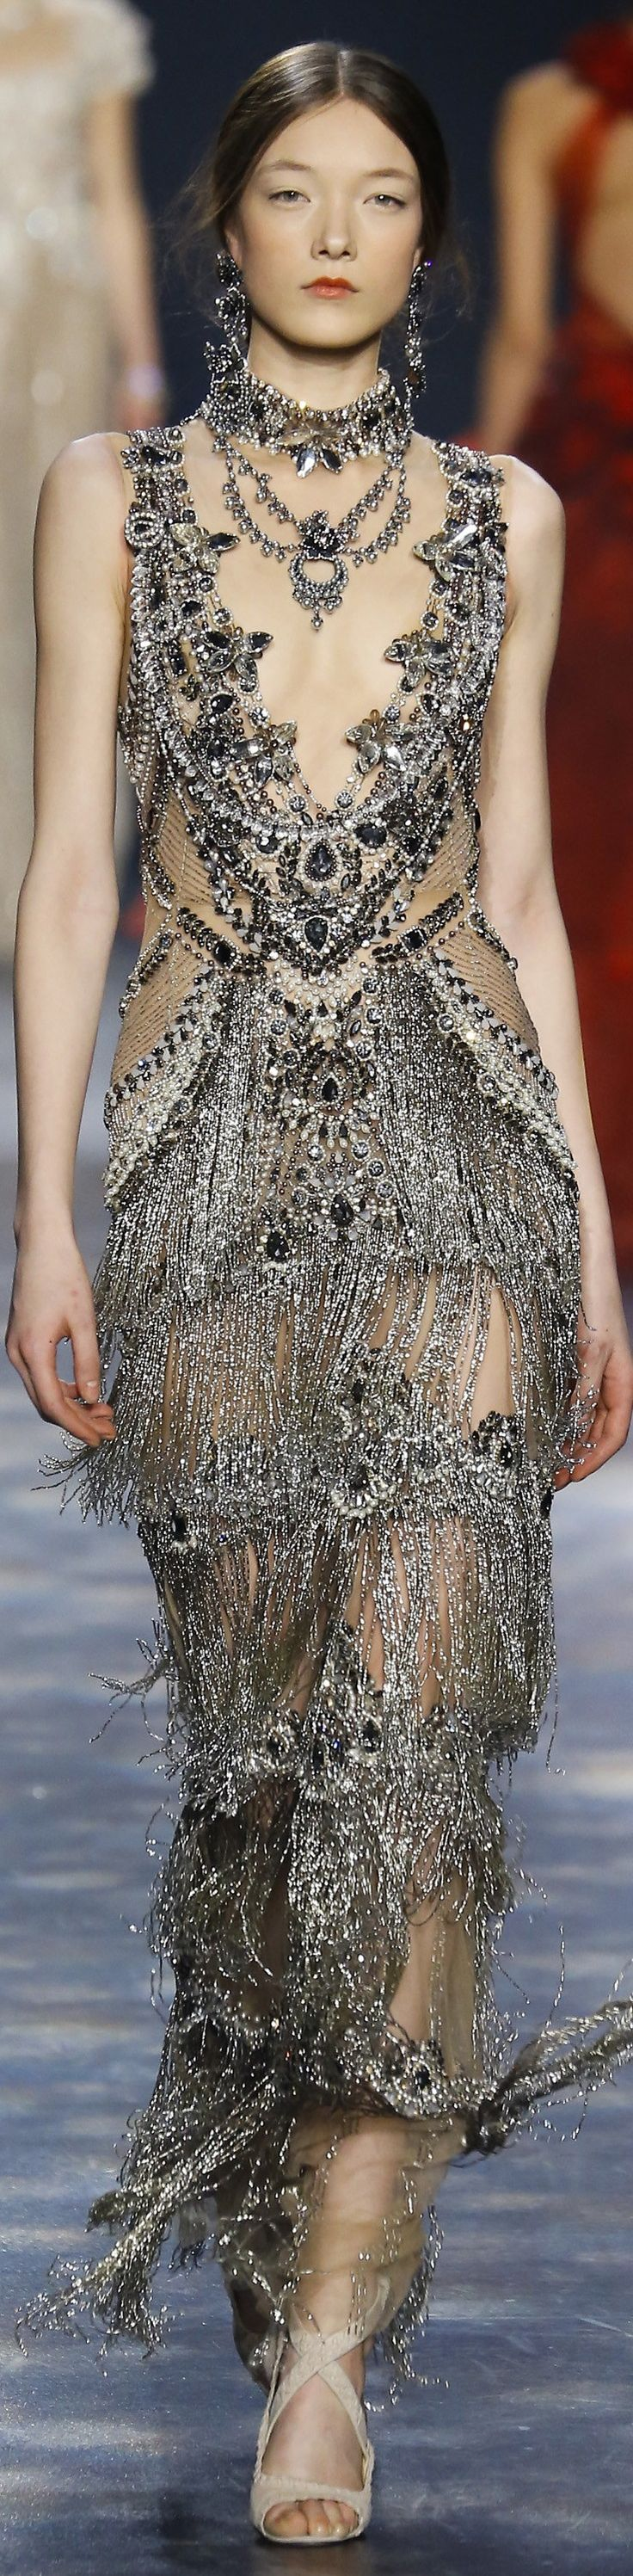 Marchesa fall 2016 RTW. Check out more fashion and style inspirations to build your gorgeous style on evanescentescape.com